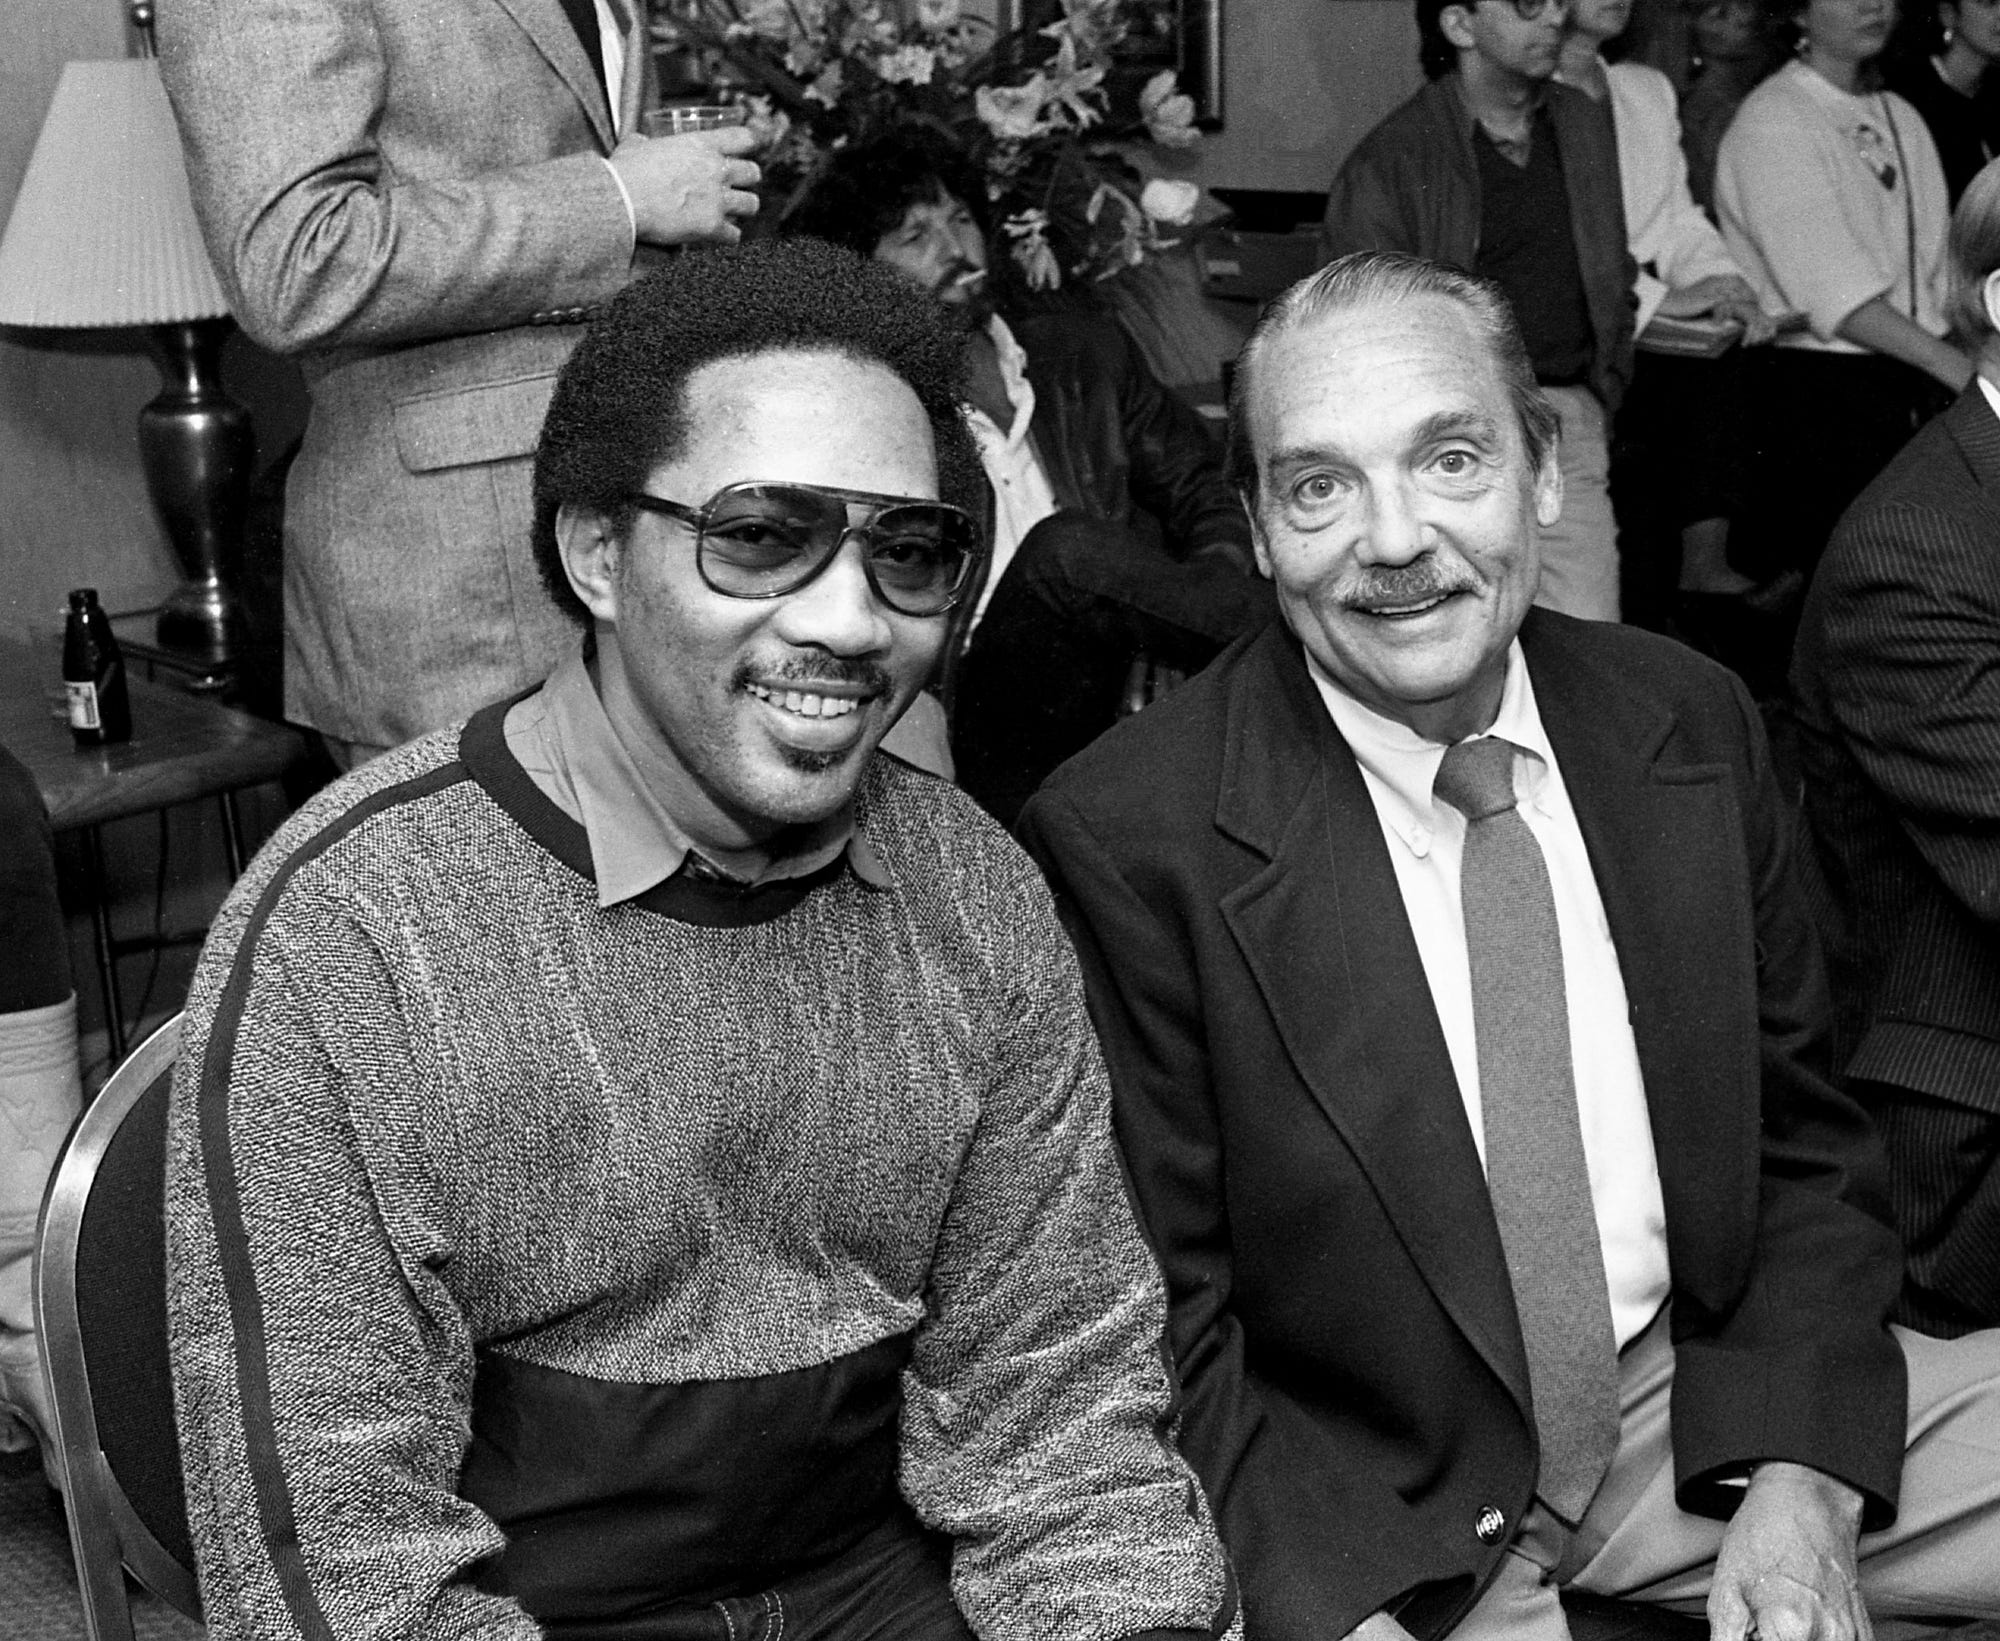 """Veteran WLAC rhythm & blues deejay Hoss Allen, right, begins planning the star-studded March 26 Opry House concert that will benefit his cancer-stricken radio brother John R. (Richbourg) March 6, 1985. Among the celebrities who joined """"The Hossman"""" at the Spence Manor is Bobby Jones, left, who was aided by John R.'s pioneering broadcasts of soul sounds."""